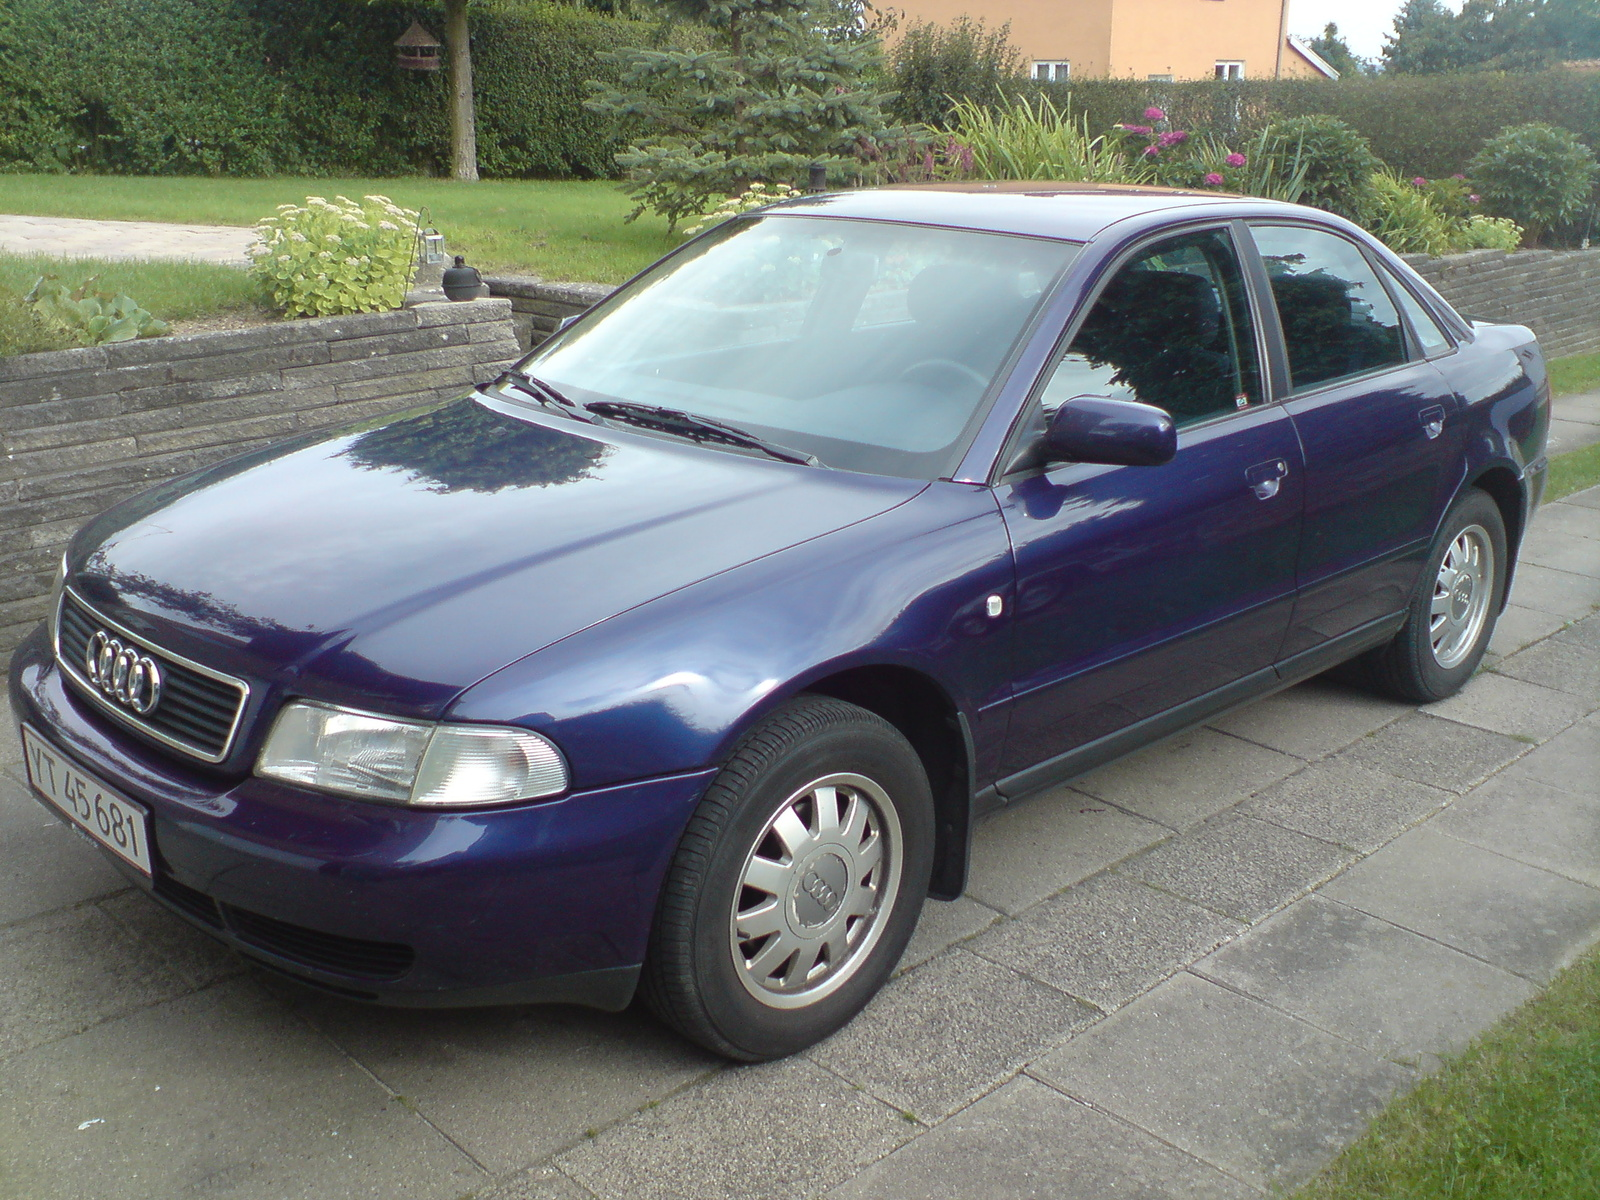 1998 Audi A4 4 Dr 1.8T Turbo Sedan picture, exterior